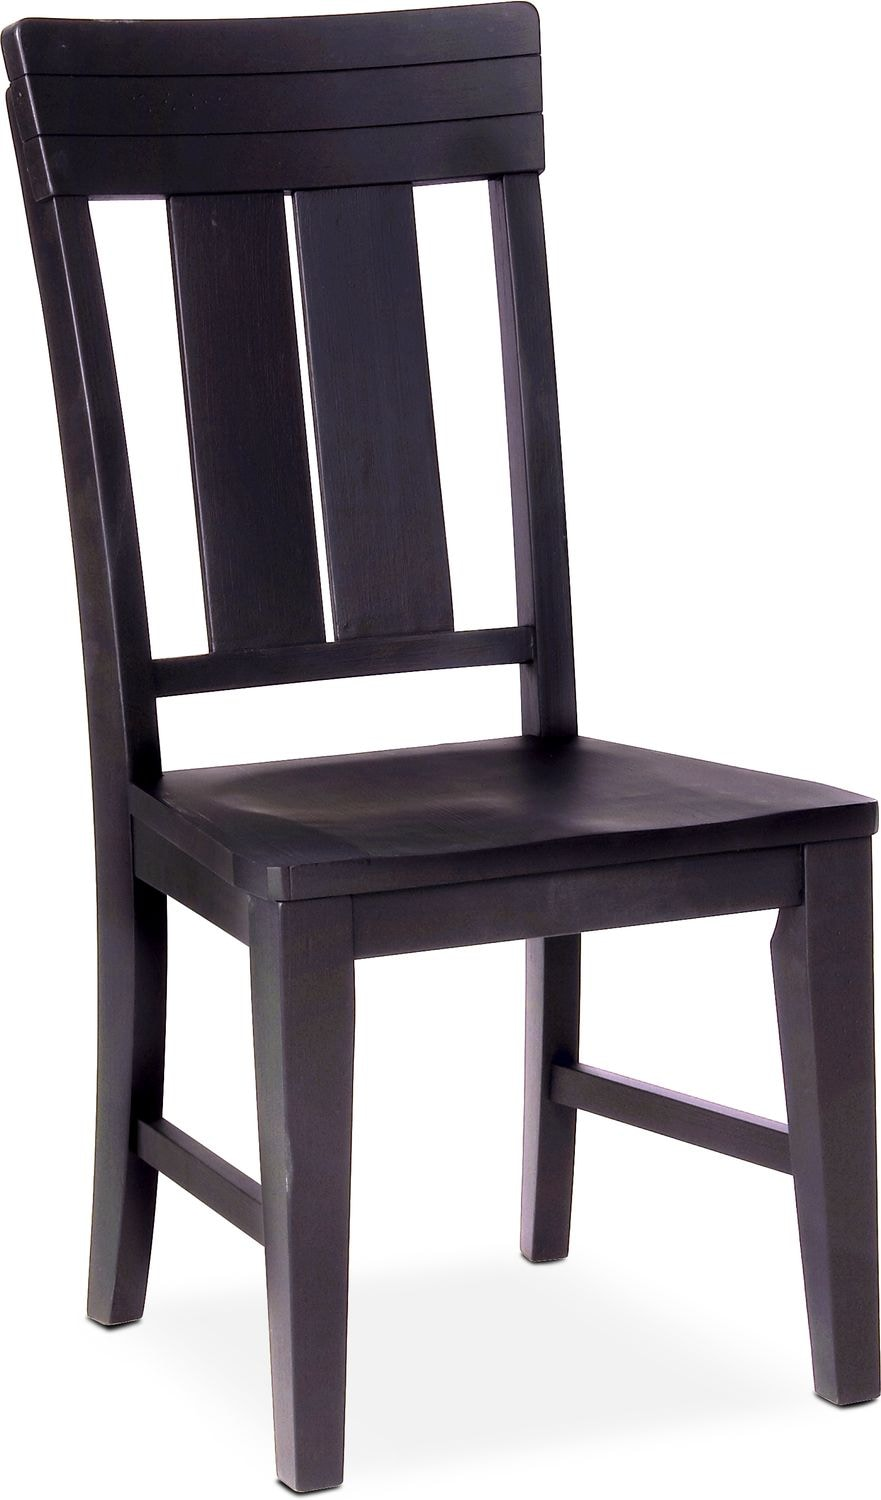 Dining Room Furniture - New Haven Slat-Back Side Chair - Black